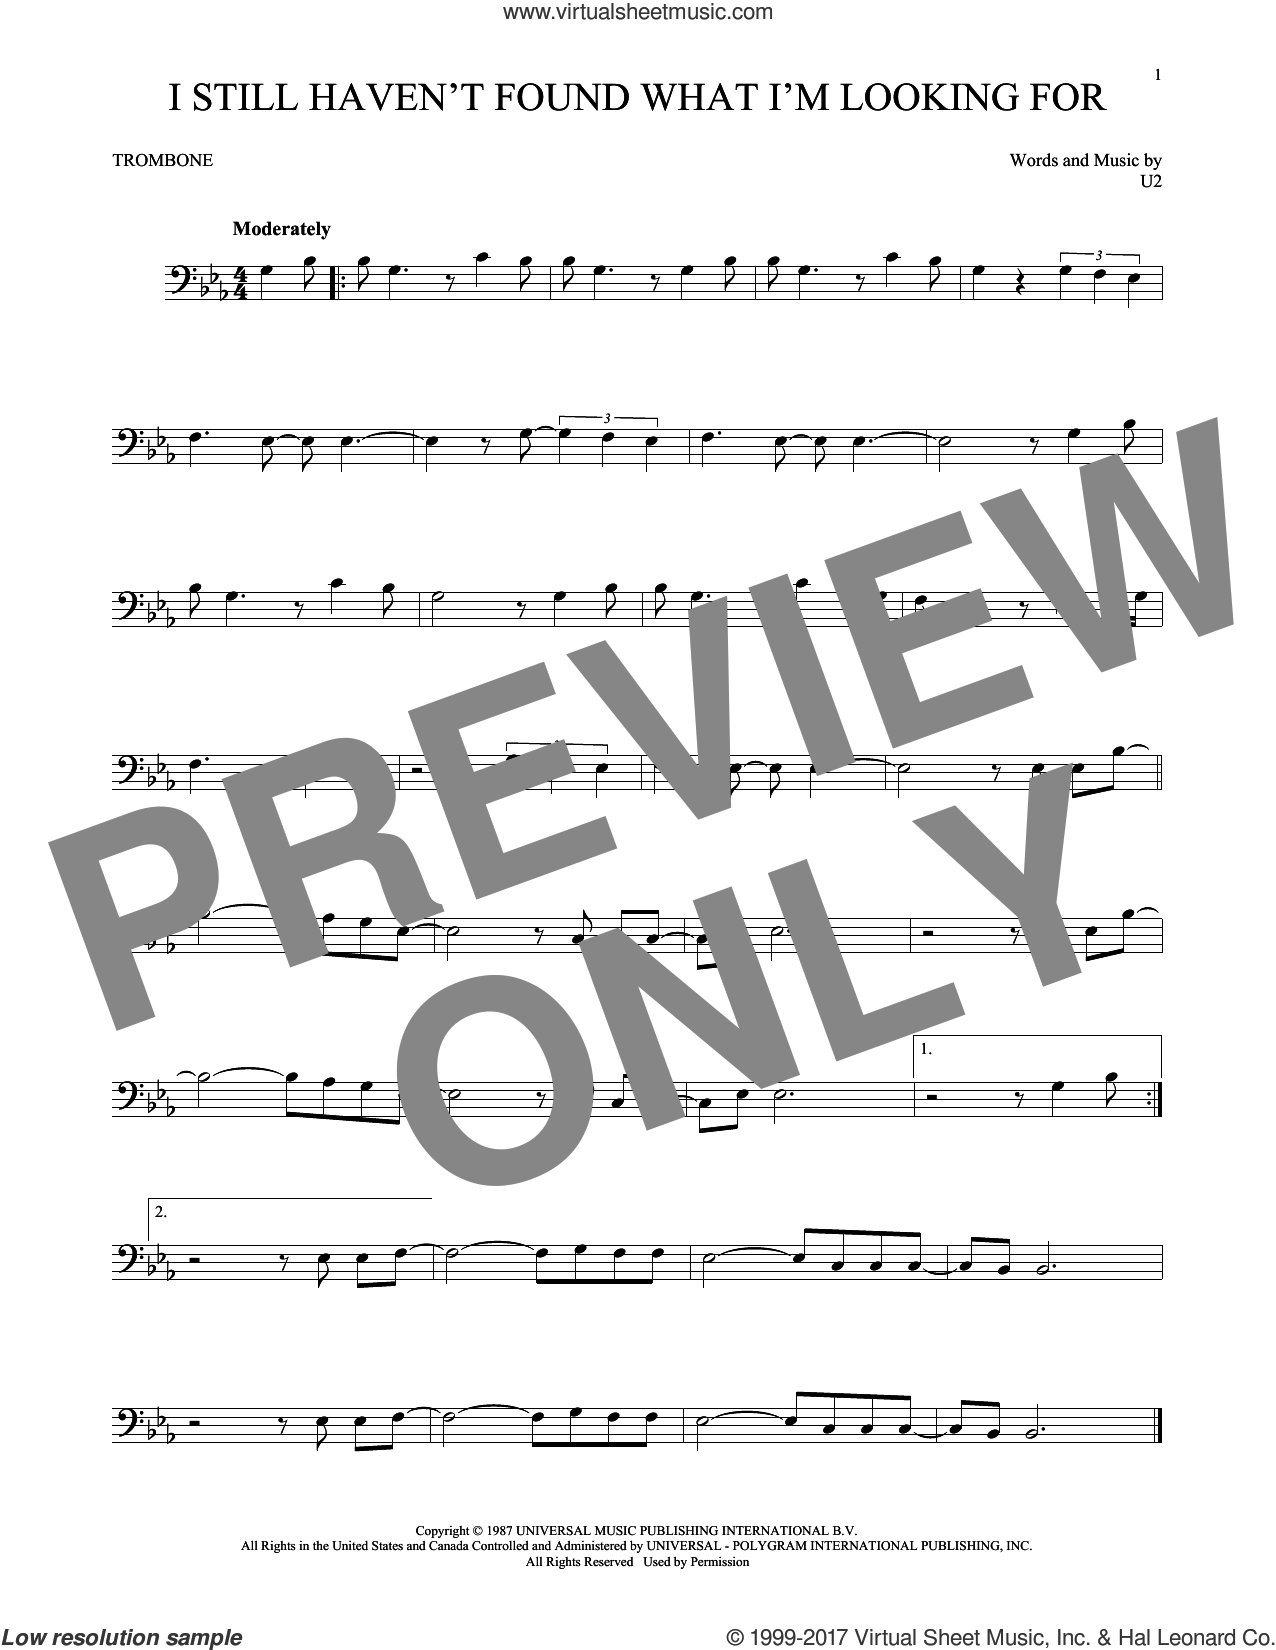 I Still Haven't Found What I'm Looking For sheet music for trombone solo by U2, intermediate. Score Image Preview.